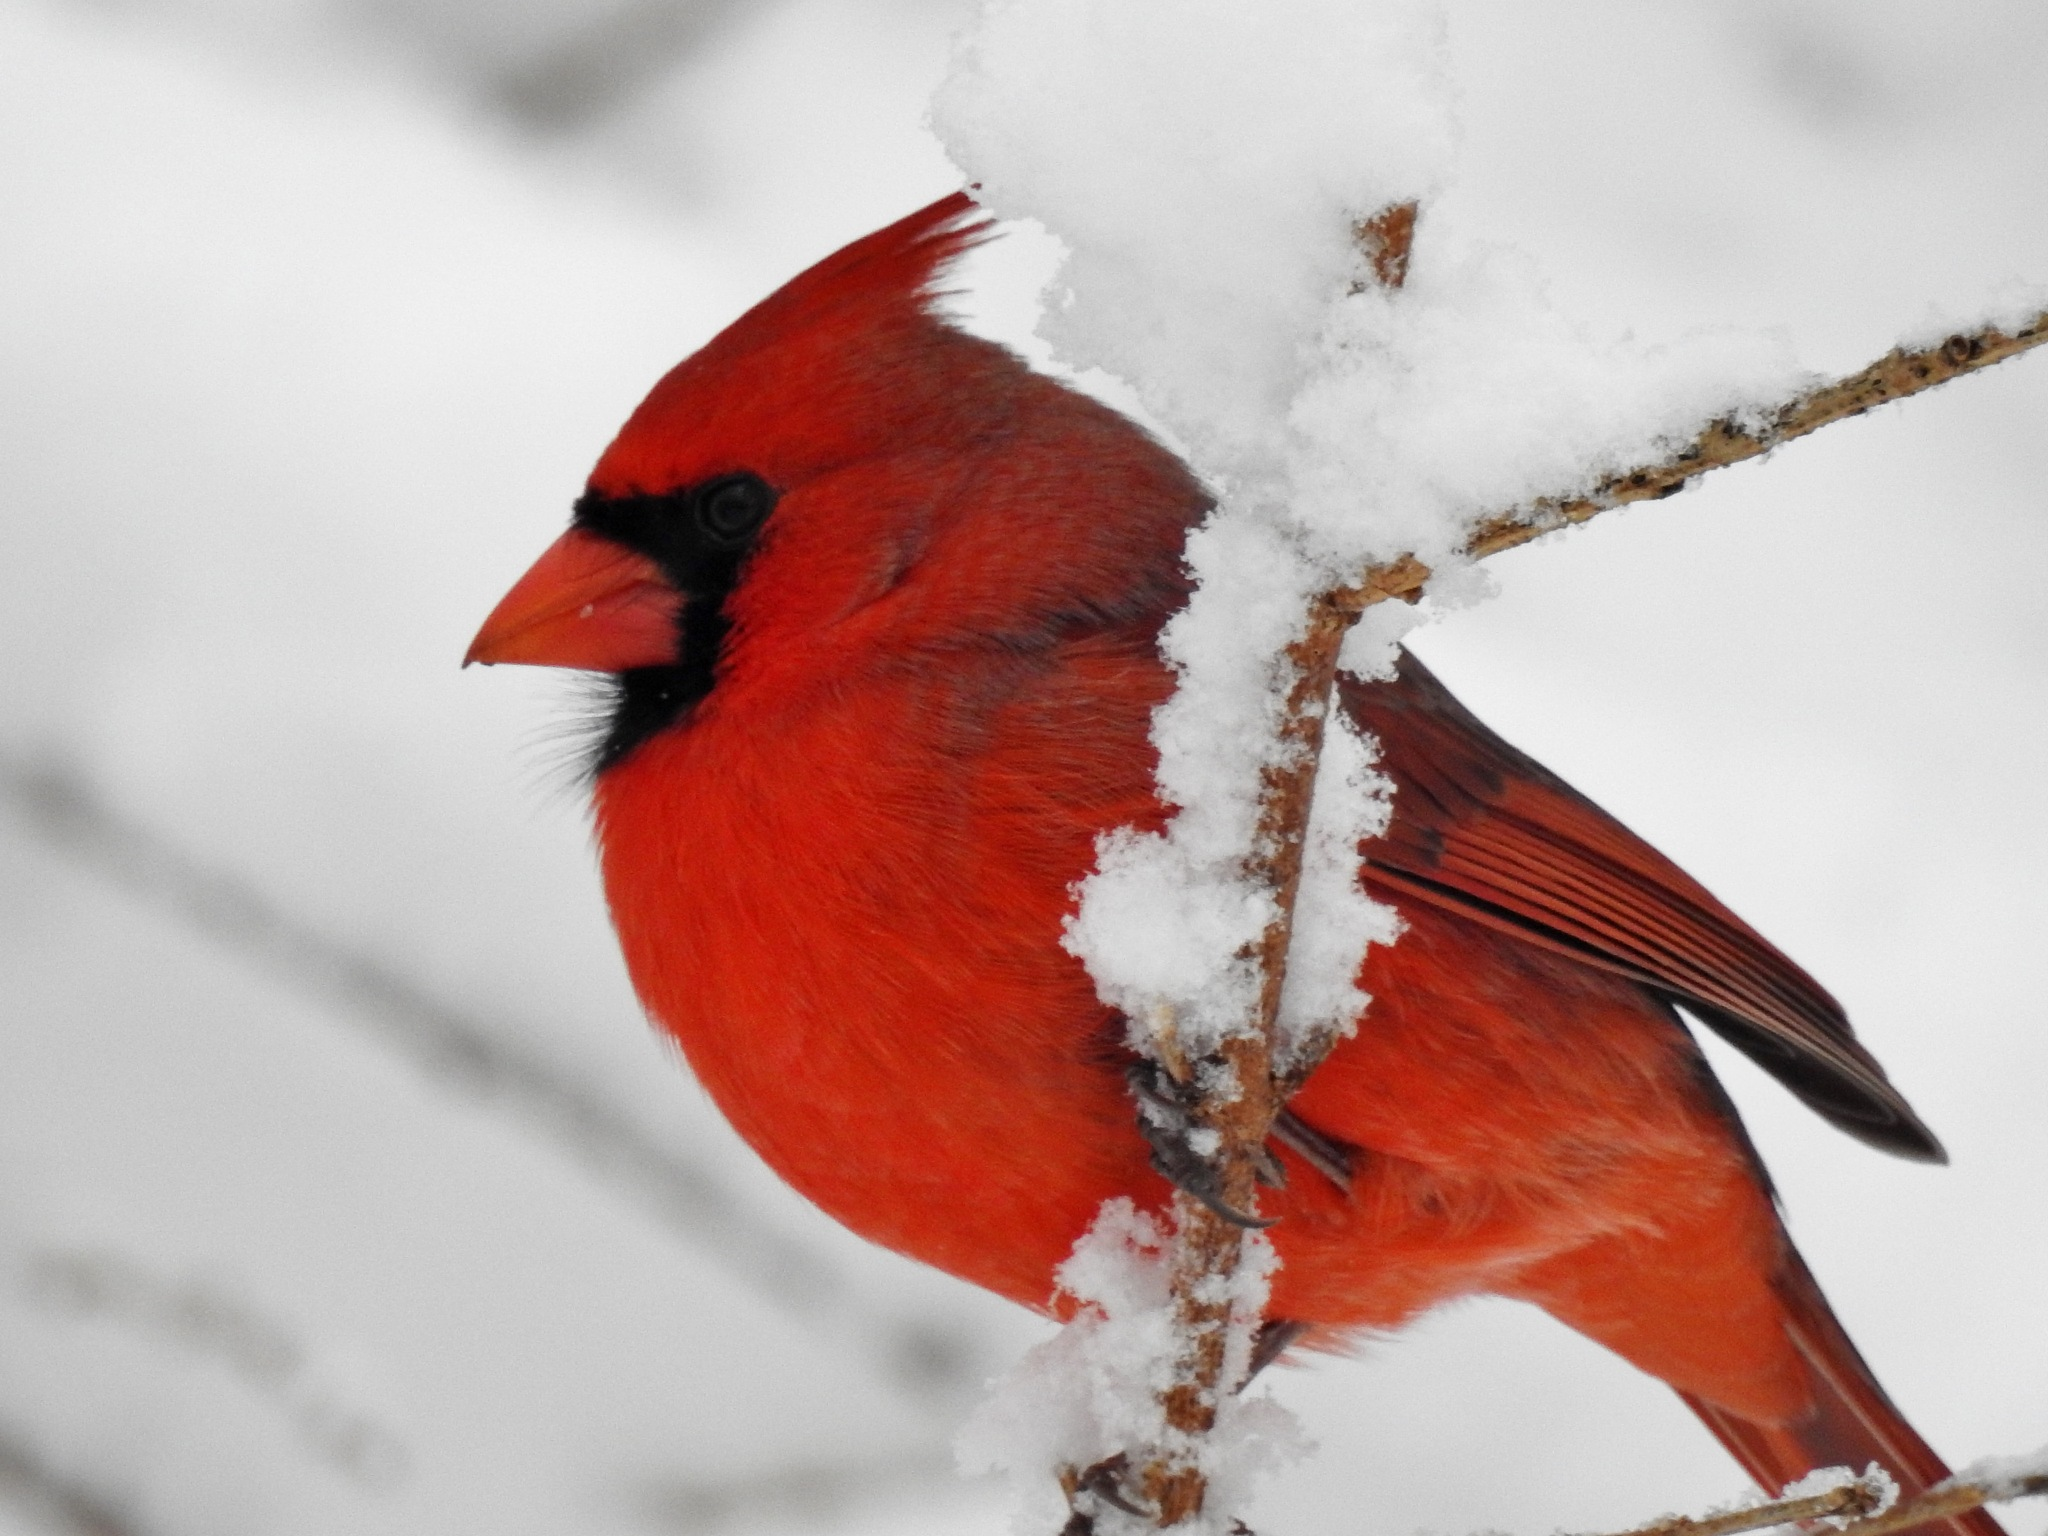 Cardinal in the Snow by carol.capozzi.18